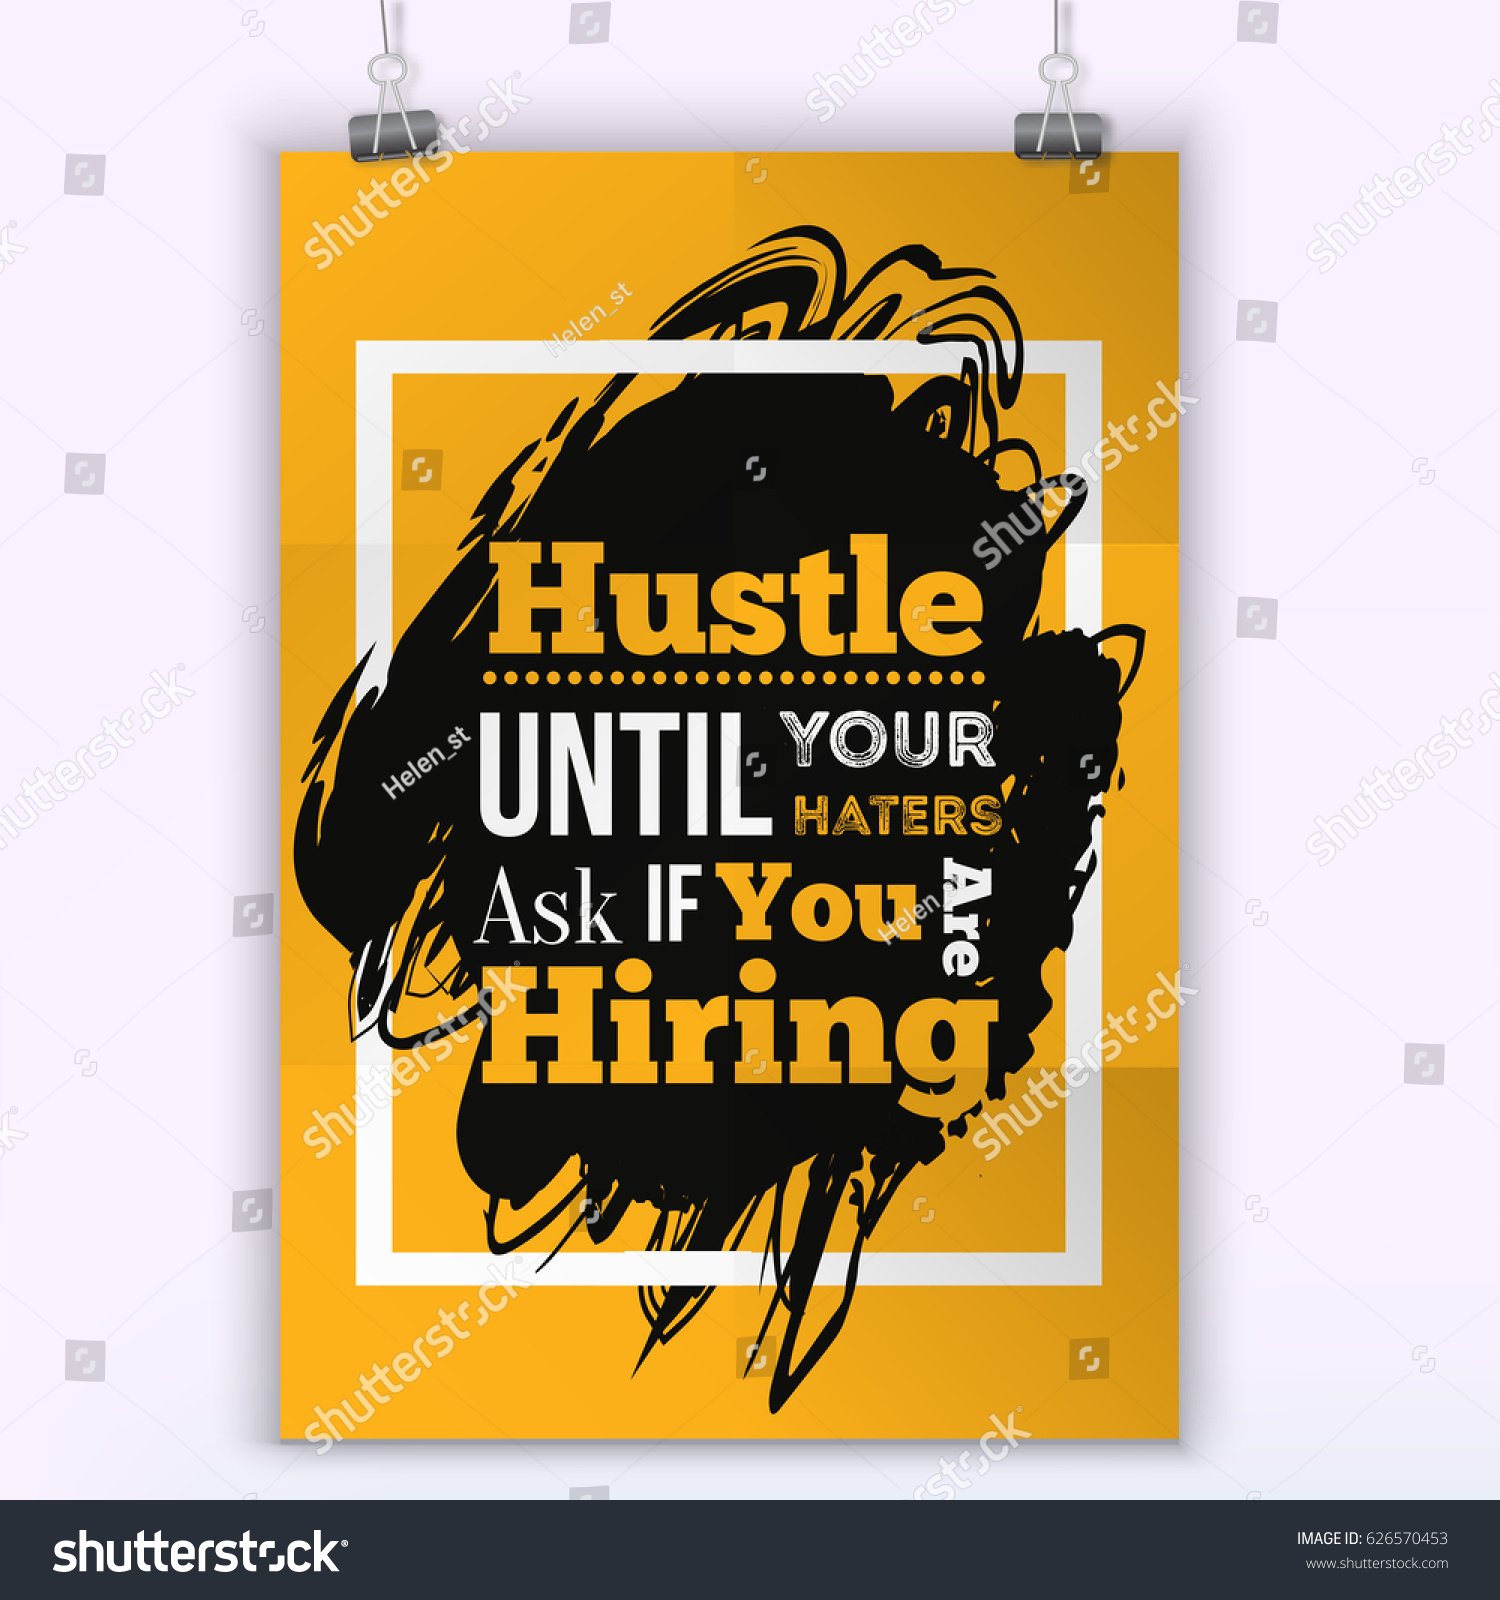 Inspirational Quote About Hustle Hire Typography Stock Vector ...